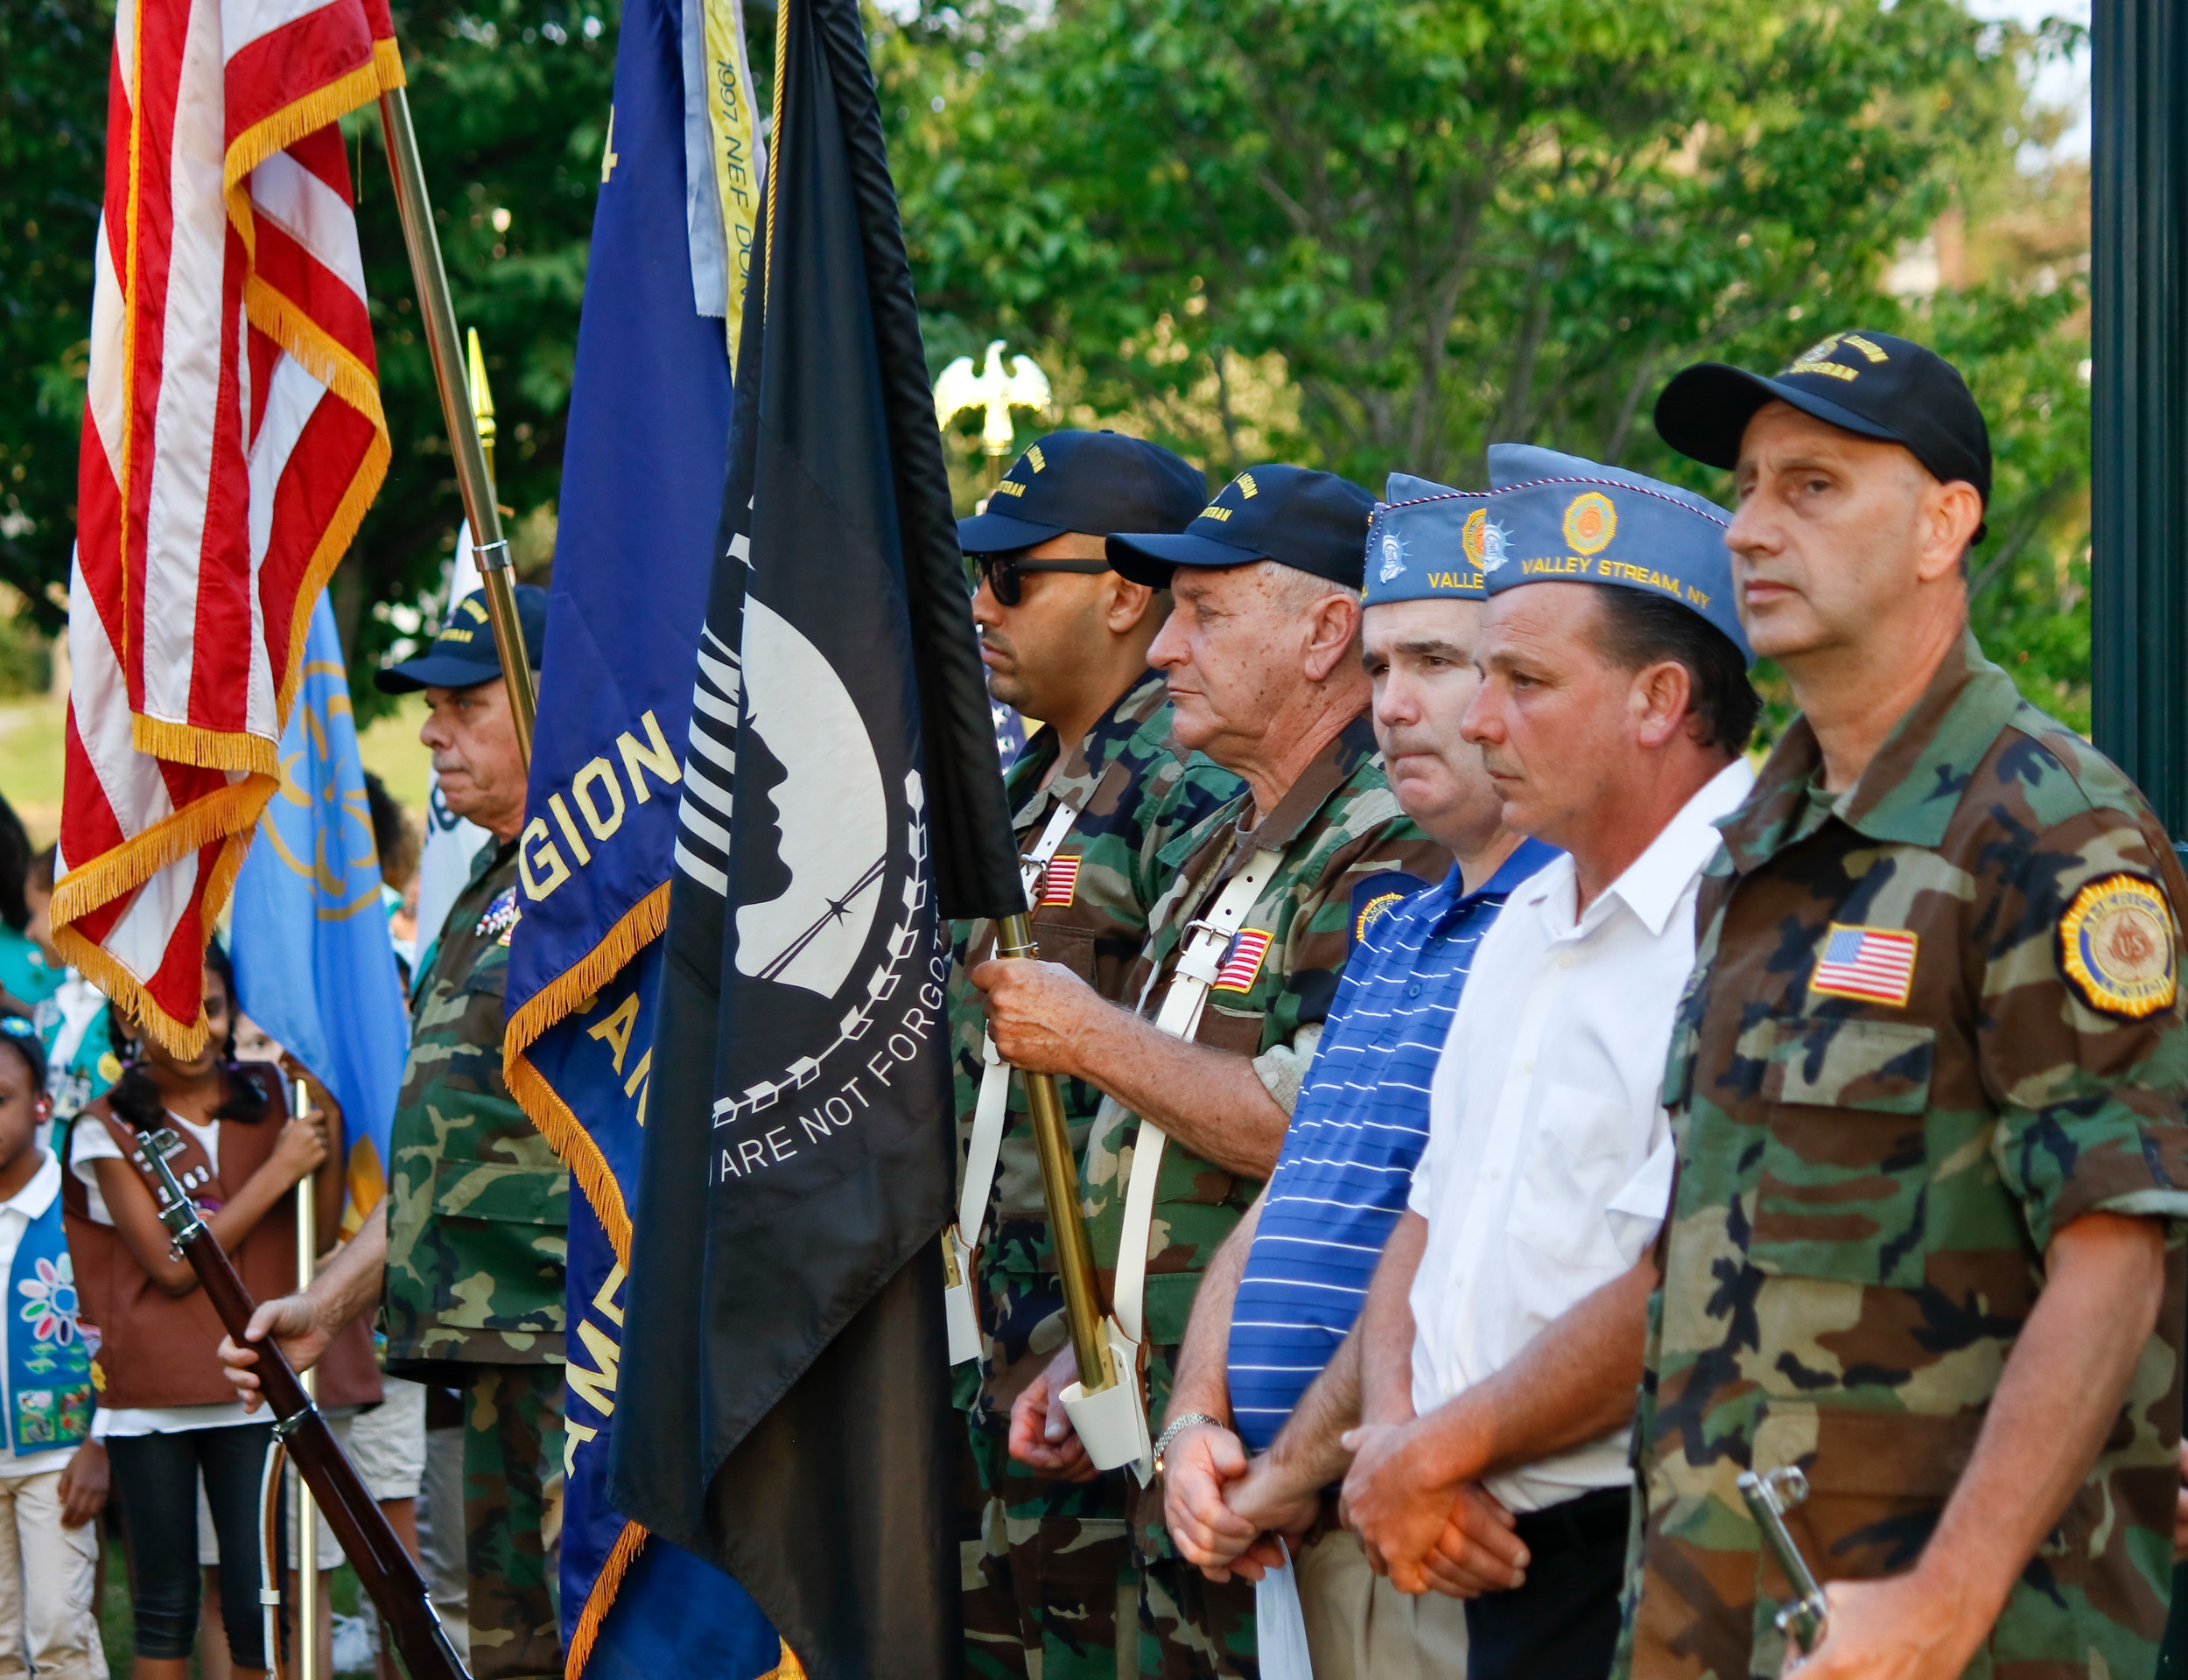 American Legion and Veteran of Foreign War members participated in the ceremony.